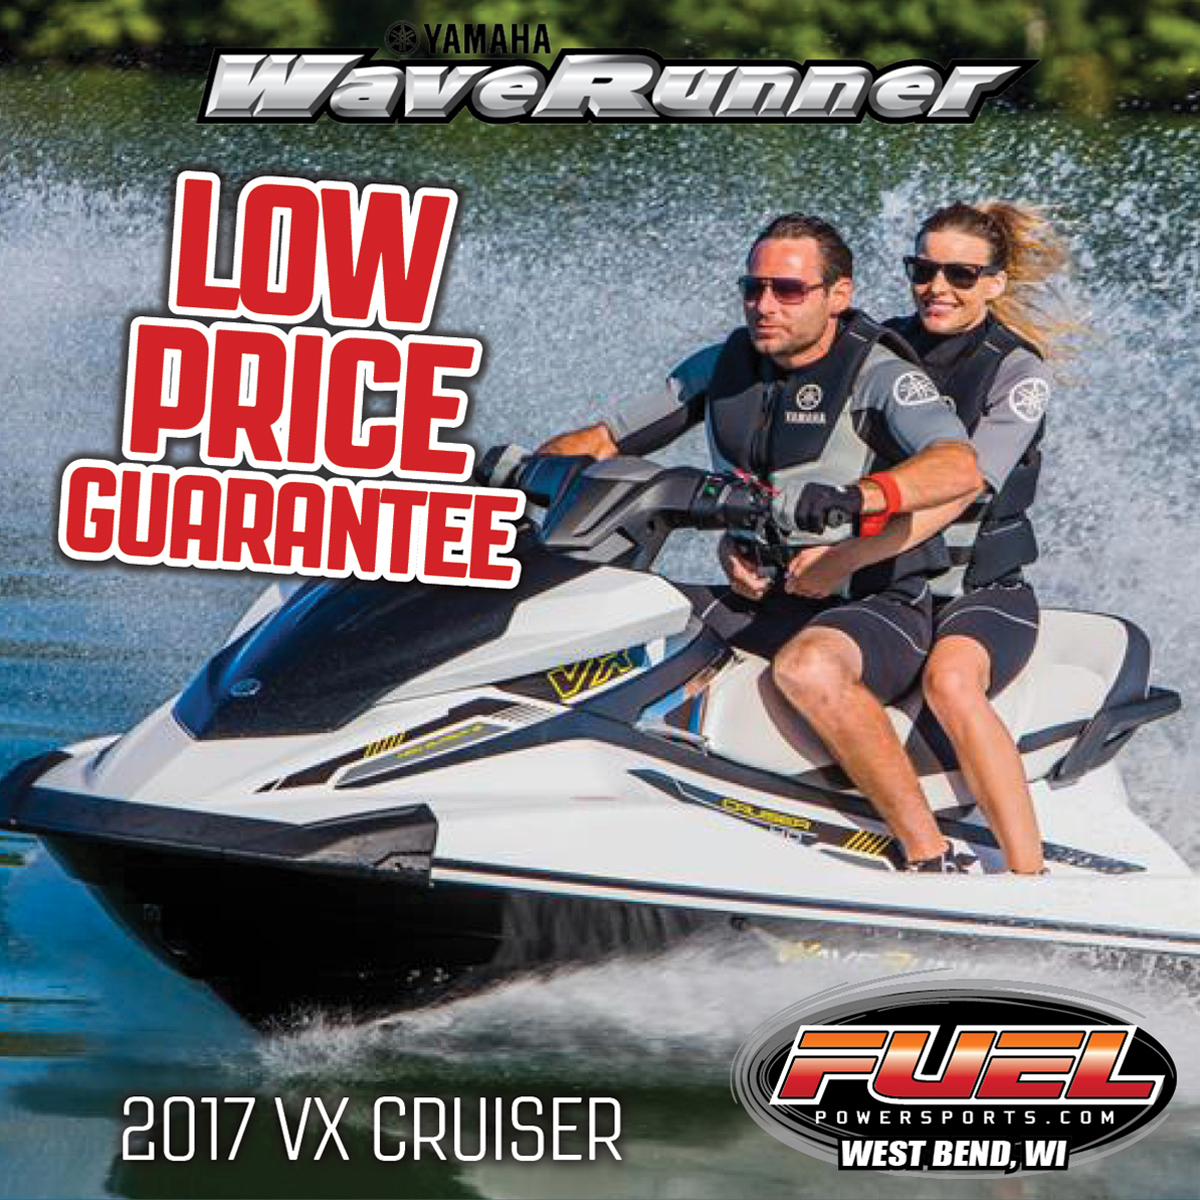 Hottest deals fuel powersports motorcycle waverunner for Yamaha pwc dealers